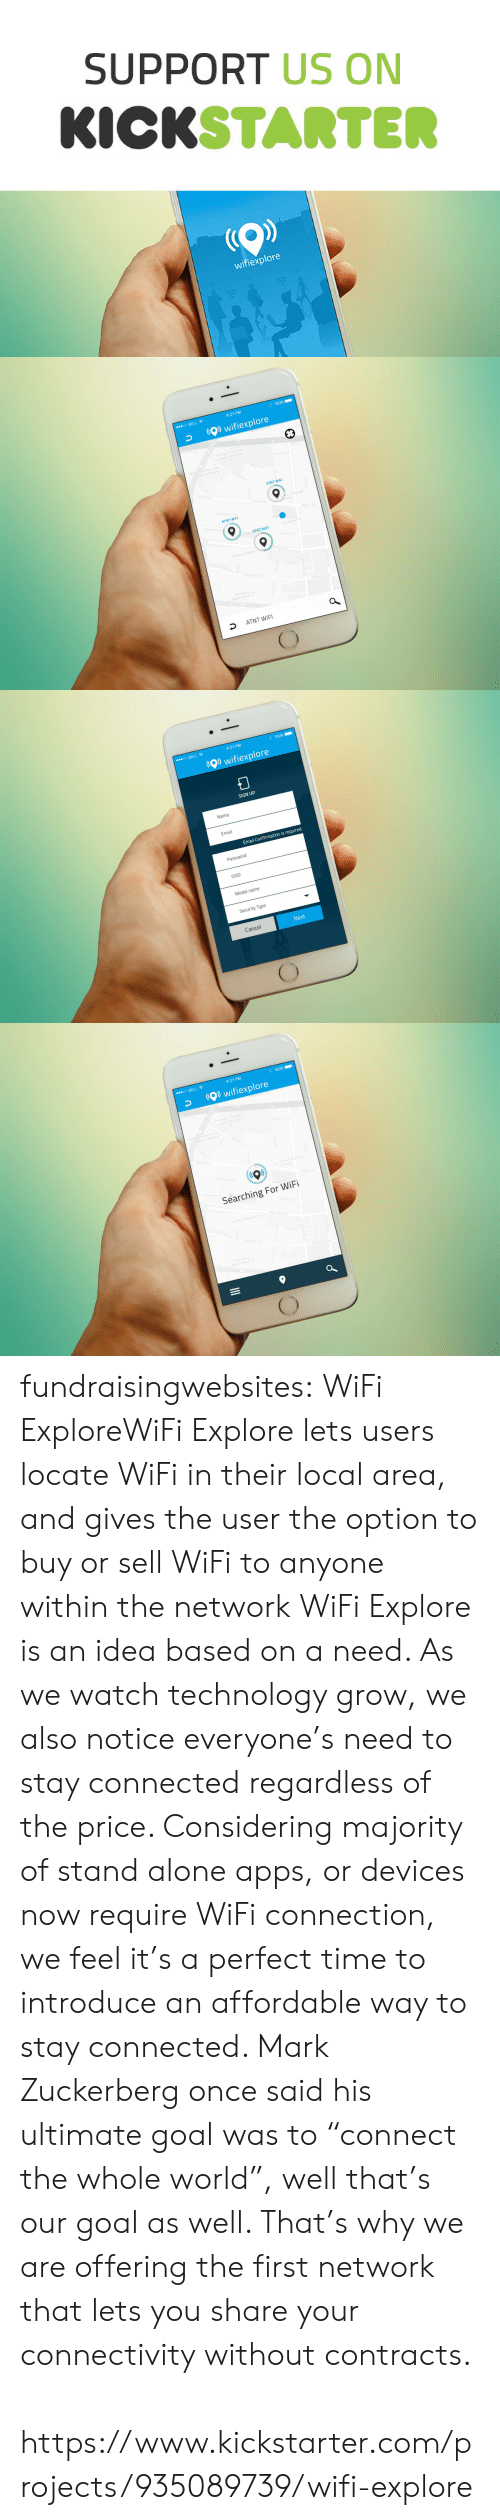 """Being Alone, Mark Zuckerberg, and Tumblr: SUPPORT US ON  KICKSTARTE  wifiexplore   4:21 PM  00 BELL令  wifiexplore  ATNT WIF  ATNT WIF  ATNT WIFI  an Vilag  Ave  50  ATNT WIFI   00 BELL令  4:21 PM  wifiexplore  SIGN UP  Name  Email  Email Confirmation is required  Password  SSID  Model name  Security Type  Cancel  Next   00 BELL令  4:21 PM  wifiexplore  Searching For WiFi fundraisingwebsites:  WiFi ExploreWiFi Explore lets users locate WiFi in their local area, and gives the user the option to buy or sell WiFi to anyone within the network  WiFi Explore is an idea based on a need. As we watch technology grow, we also notice everyone's need to stay connected regardless of the price. Considering majority of stand alone apps, or devices now require WiFi connection, we feel it's a perfect time to introduce an affordable way to stay connected. Mark Zuckerberg once said his ultimate goal was to """"connect the whole world"""", well that's our goal as well. That's why we are offering the first network that lets you share your connectivity without contracts.   https://www.kickstarter.com/projects/935089739/wifi-explore"""